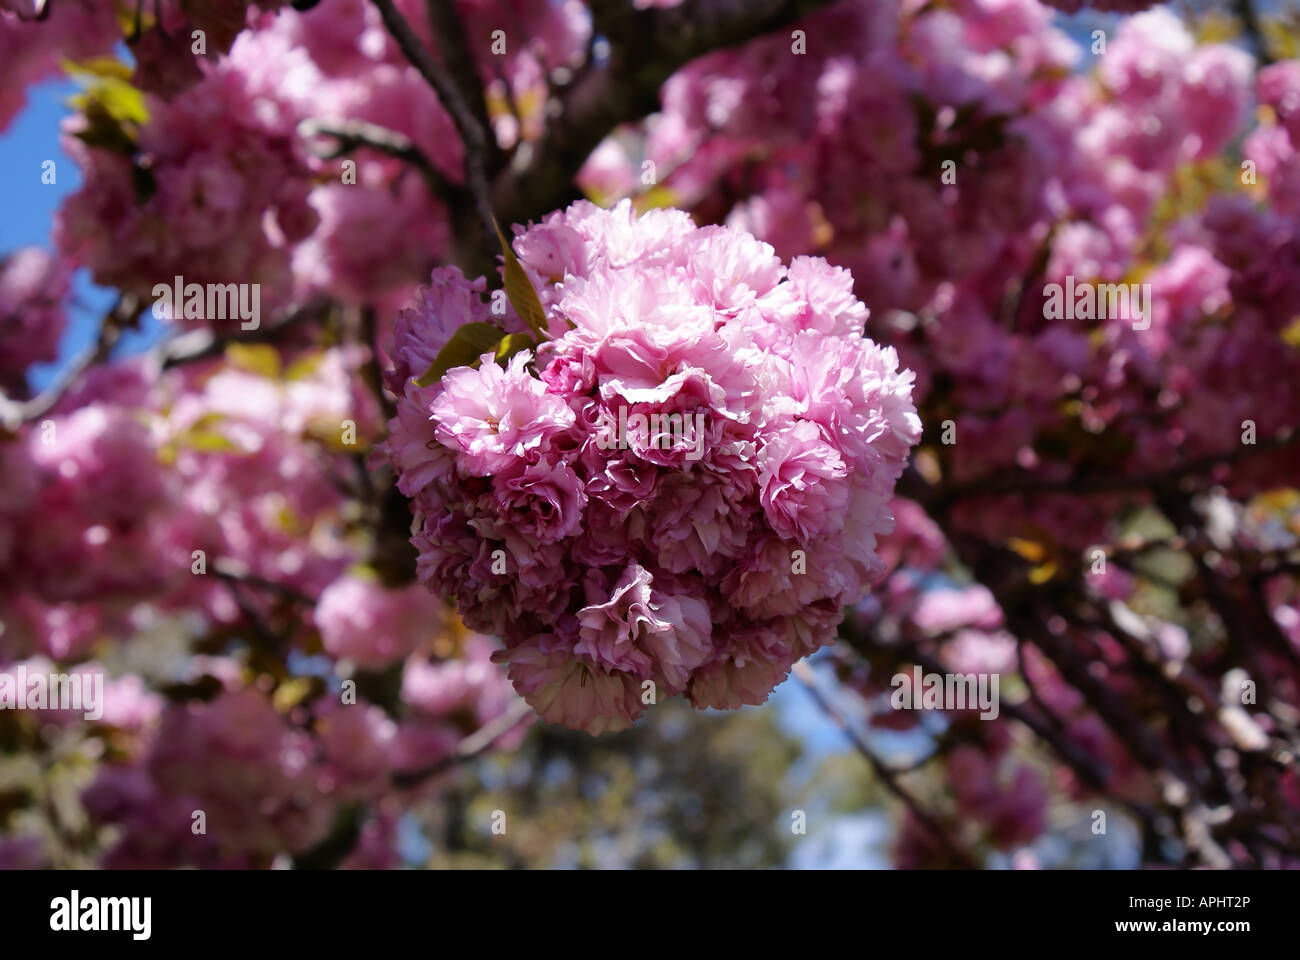 A Group Of Light Pink Flowers On A Flowering Tree Stock Photo